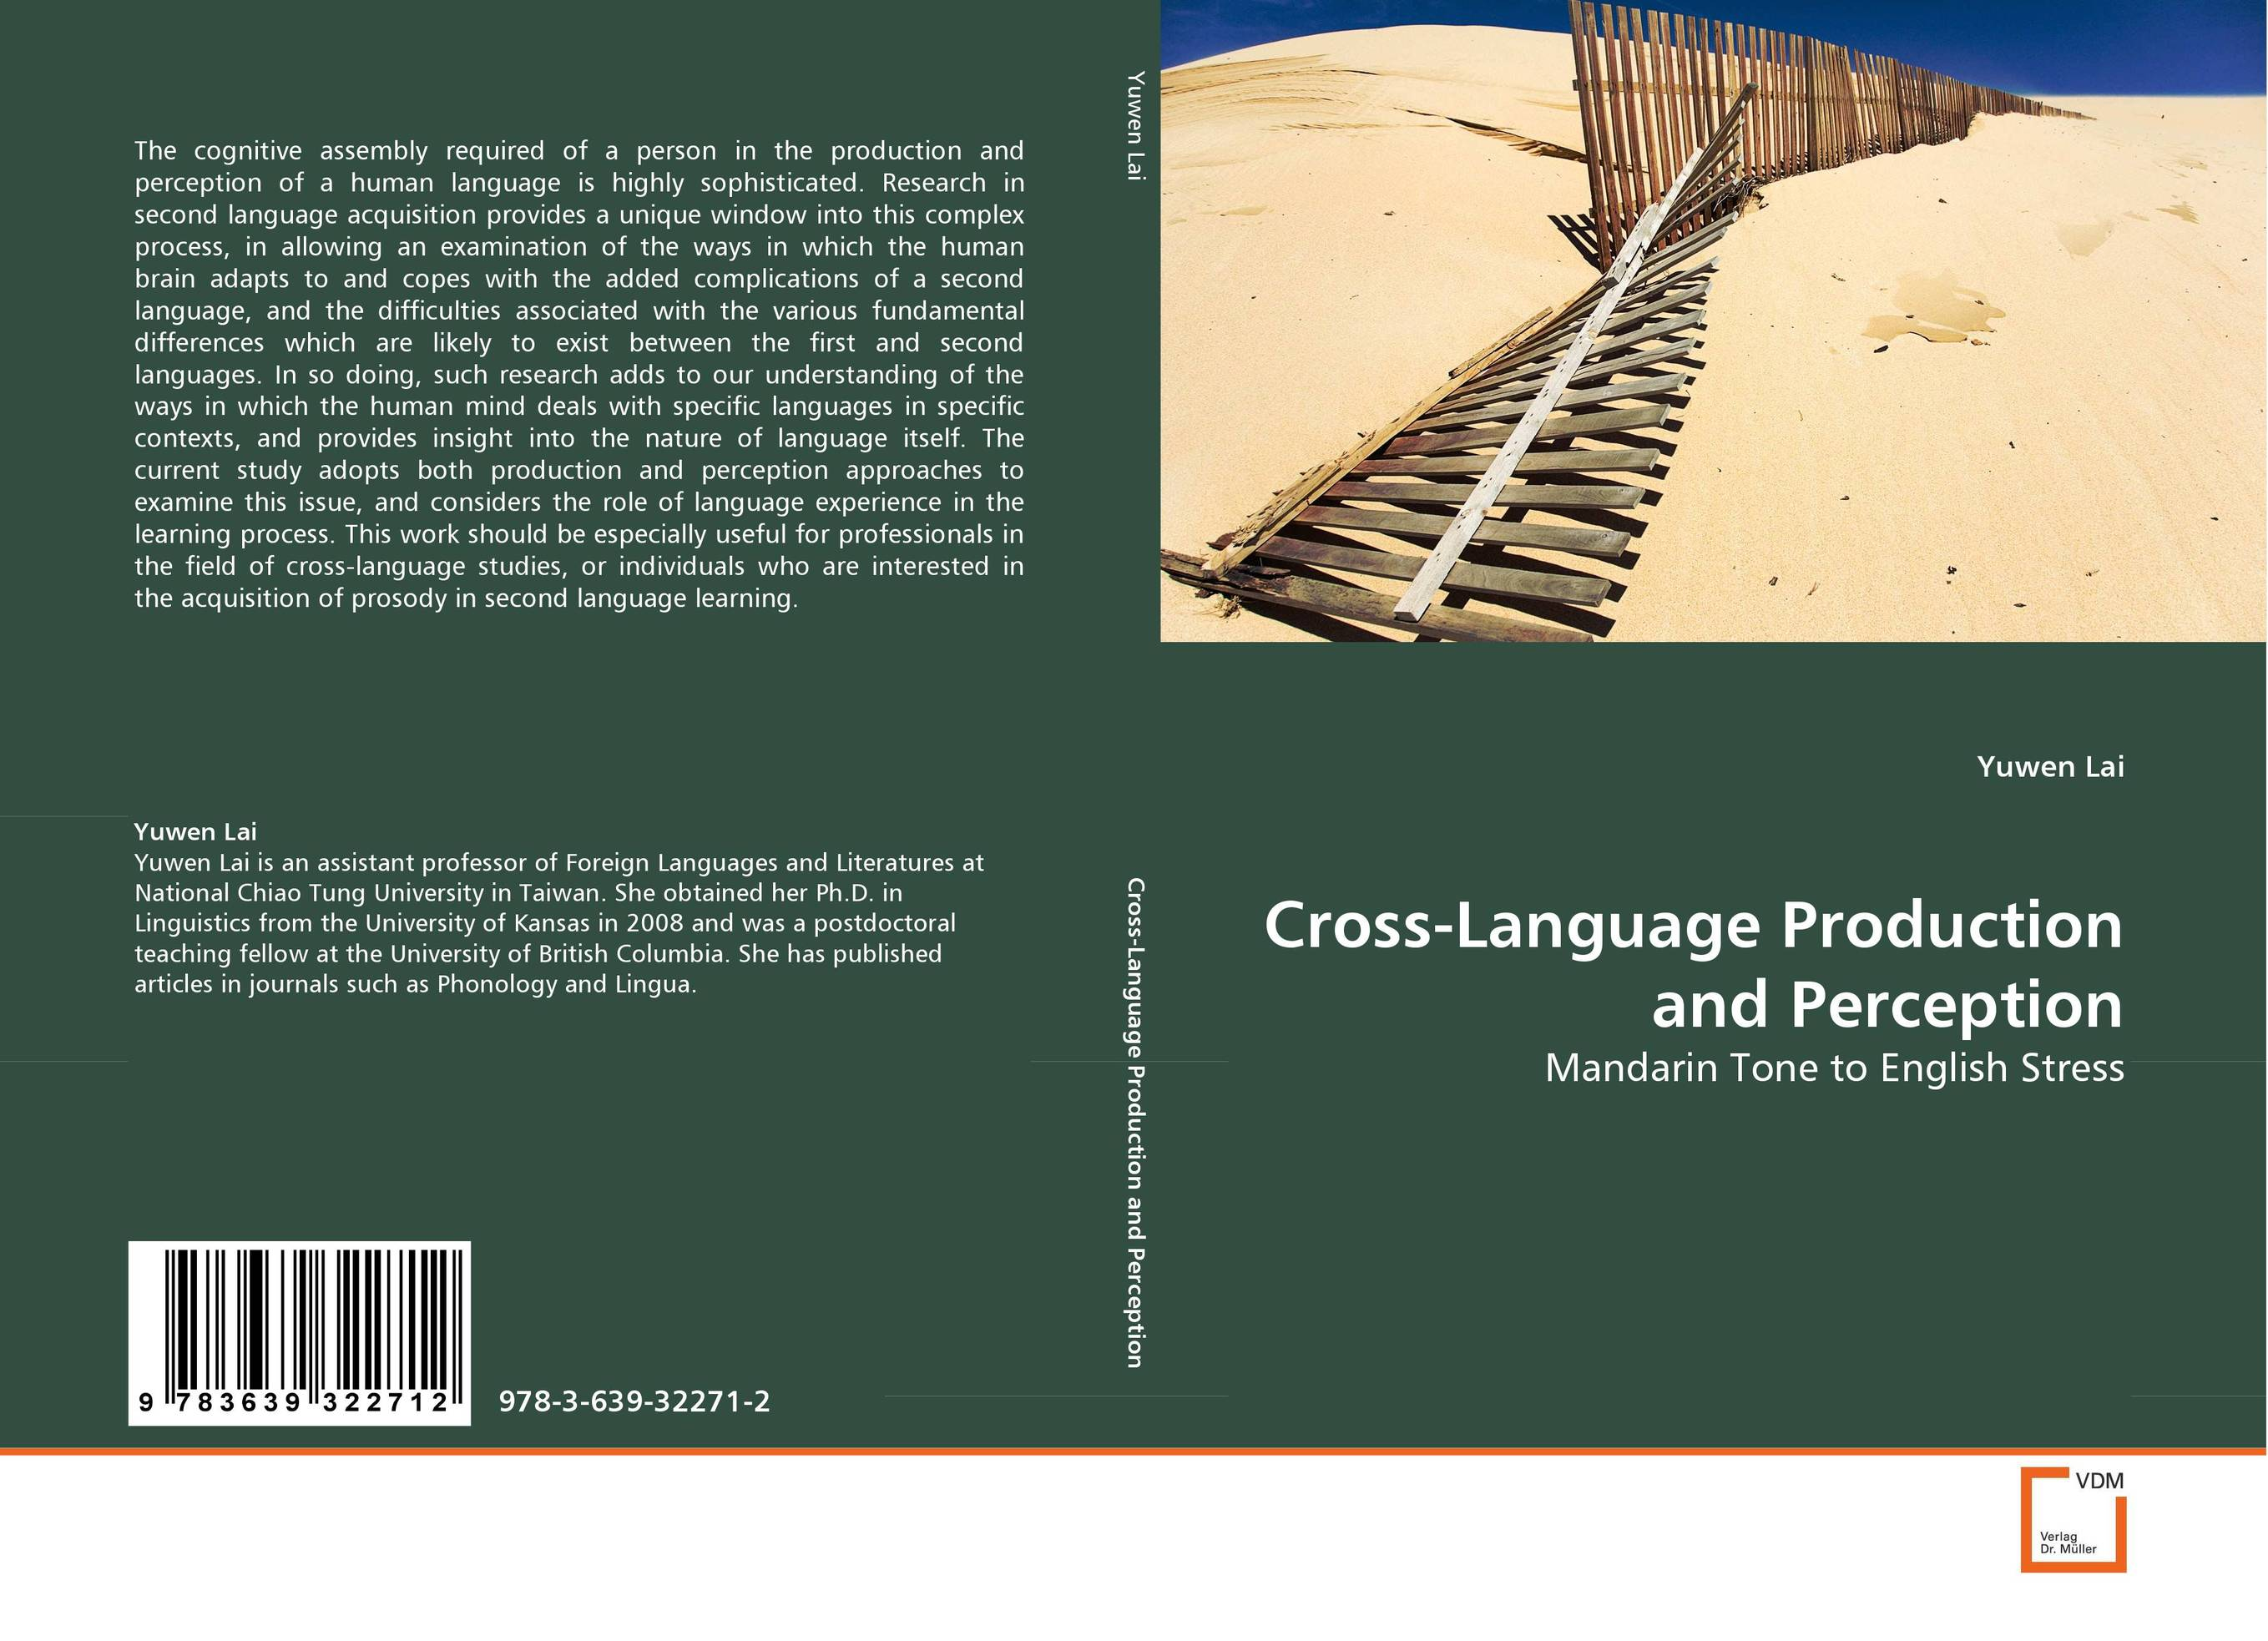 Cross-Language Production and Perception zoltan dornyei the psychology of second language acquisition